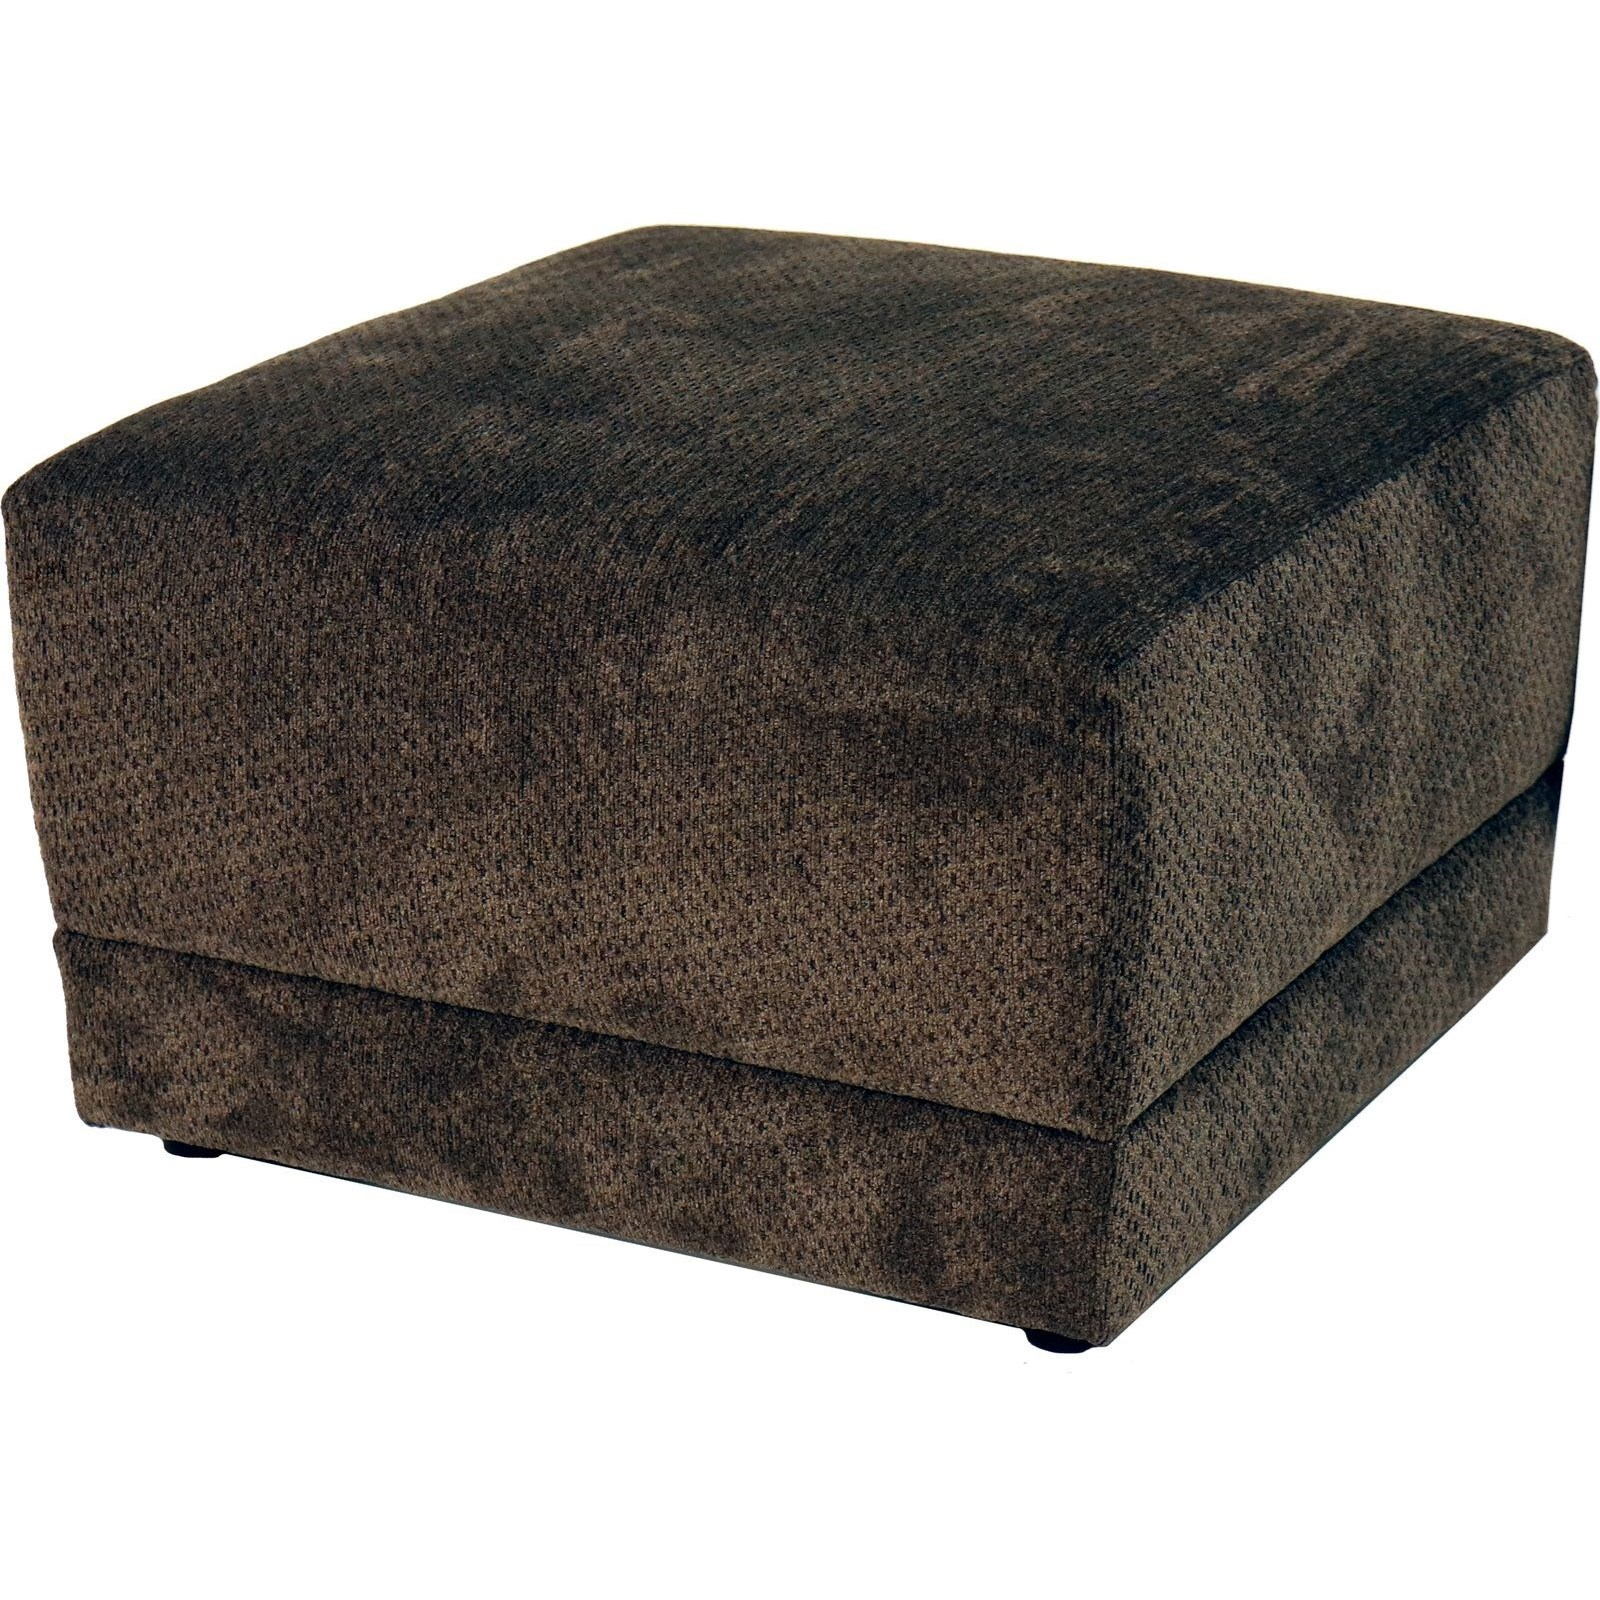 V280 Cocktail Ottoman by Alexvale at Northeast Factory Direct